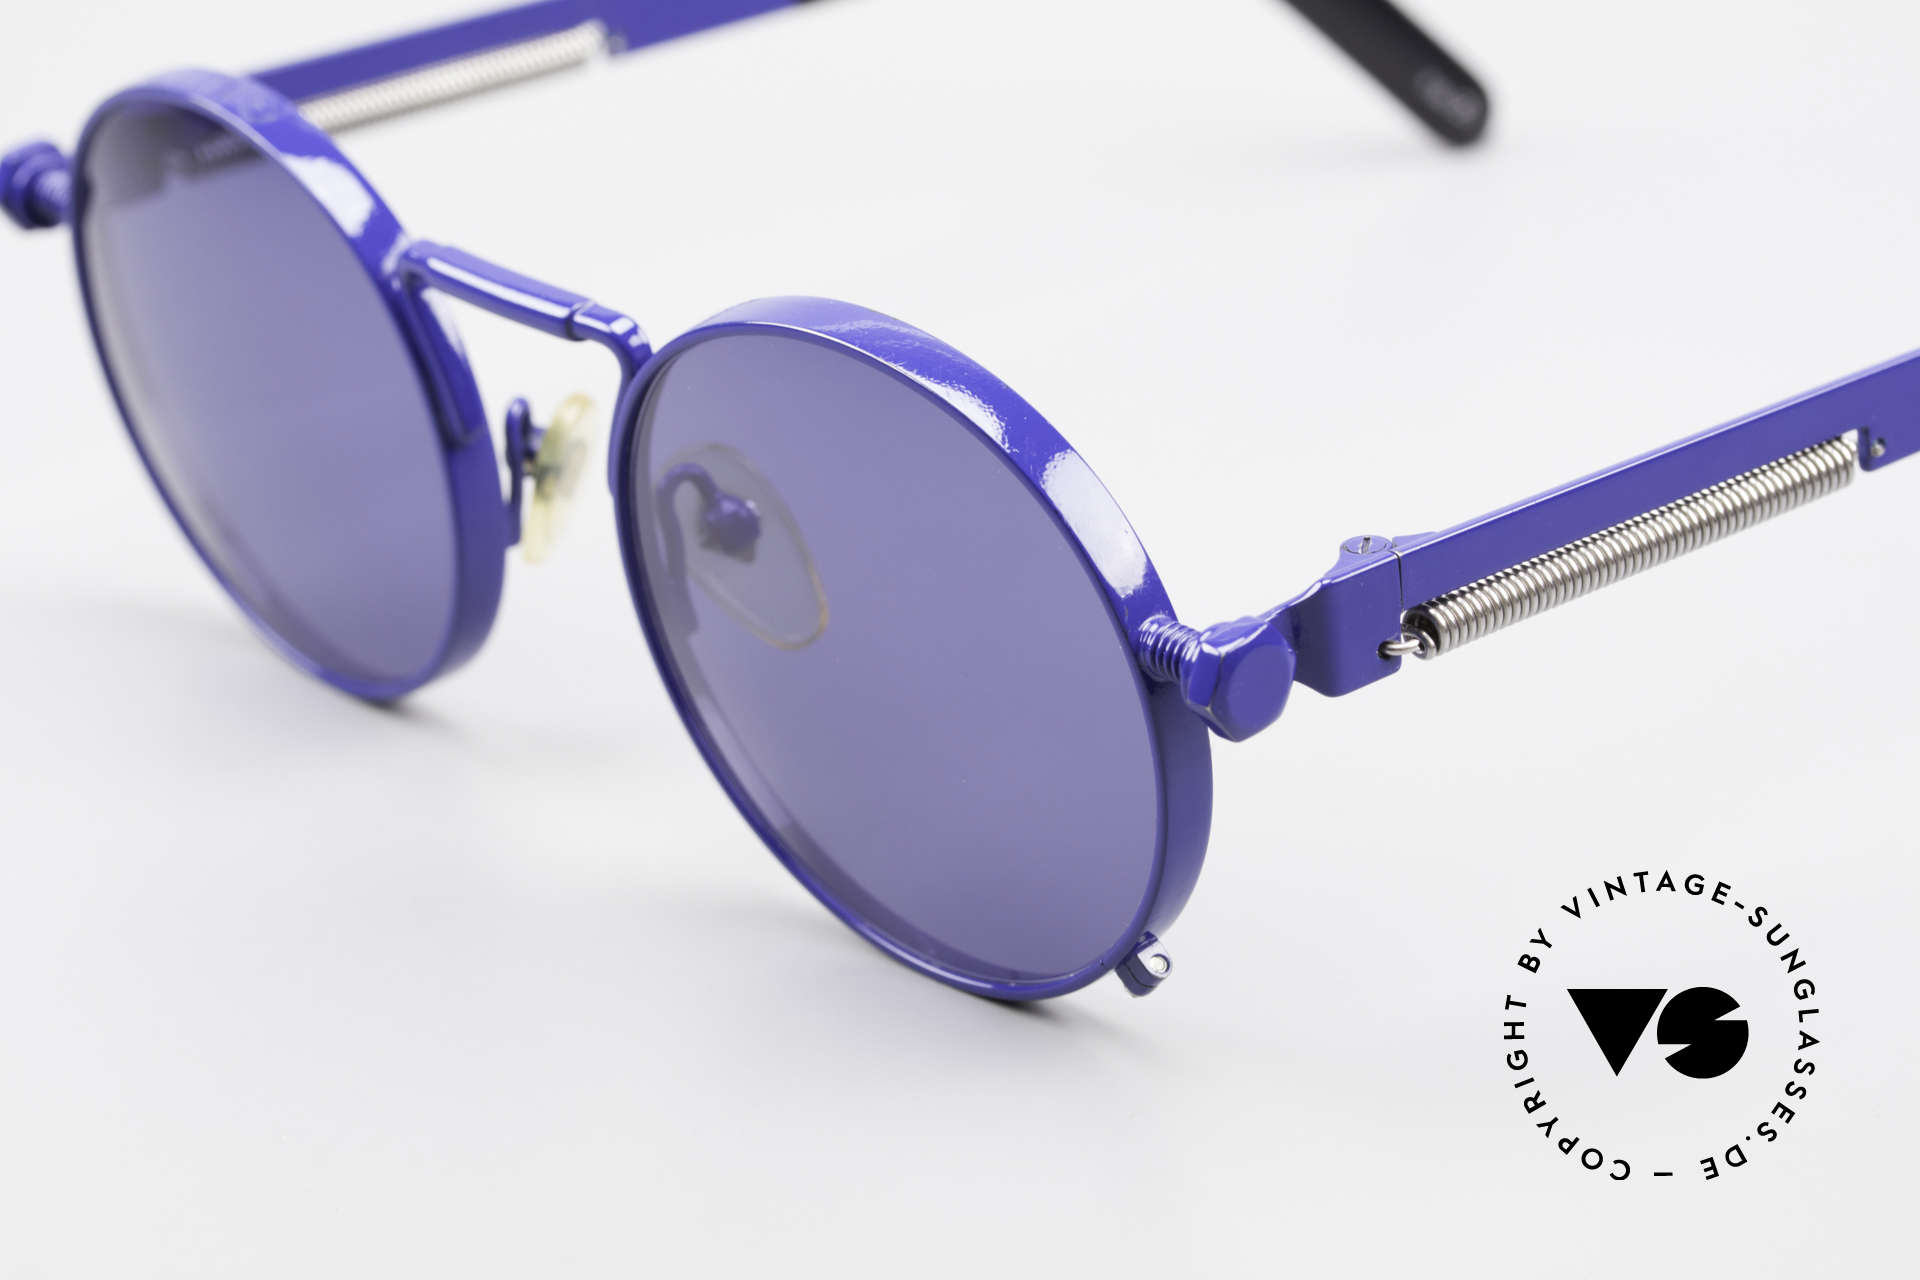 Jean Paul Gaultier 56-8171 Customized Blue Edition, the most wanted Gaultier vintage sunglasses, worldwide, Made for Men and Women